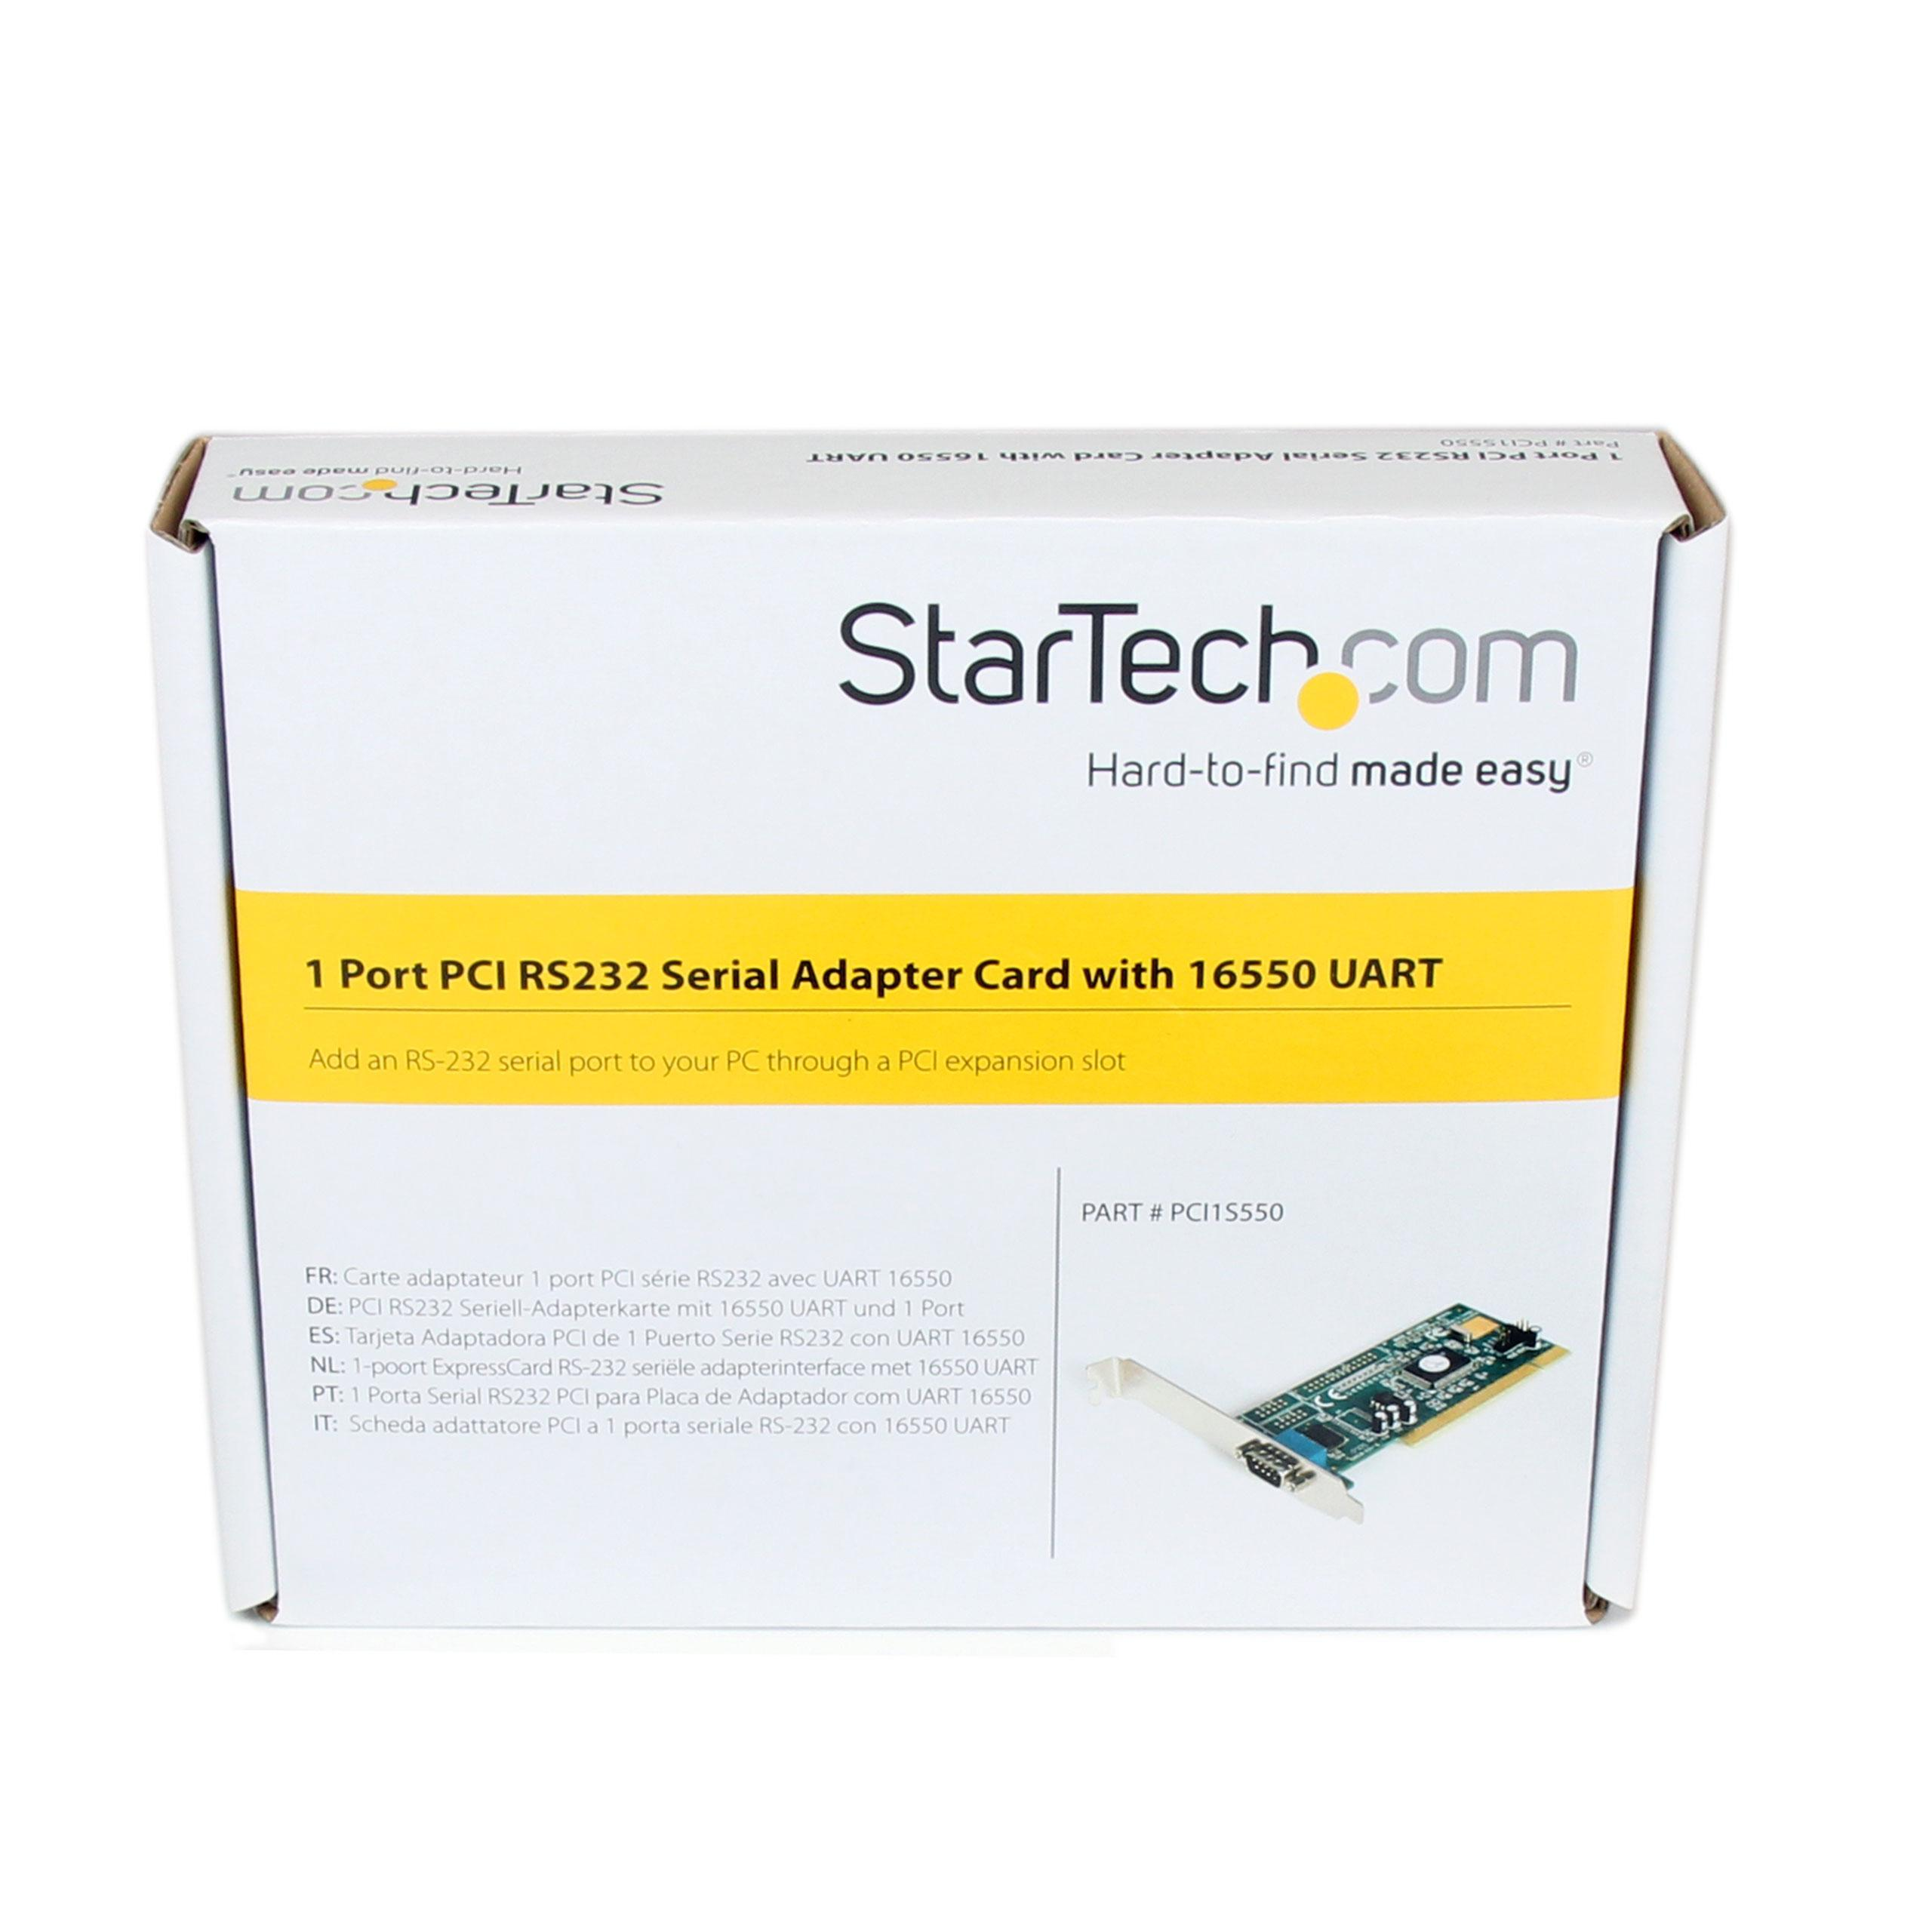 1 Port PCI RS232 Serial Adapter Card with 16550 UART - PCI Serial Adapter - PCI rs232 - PCI Serial Card